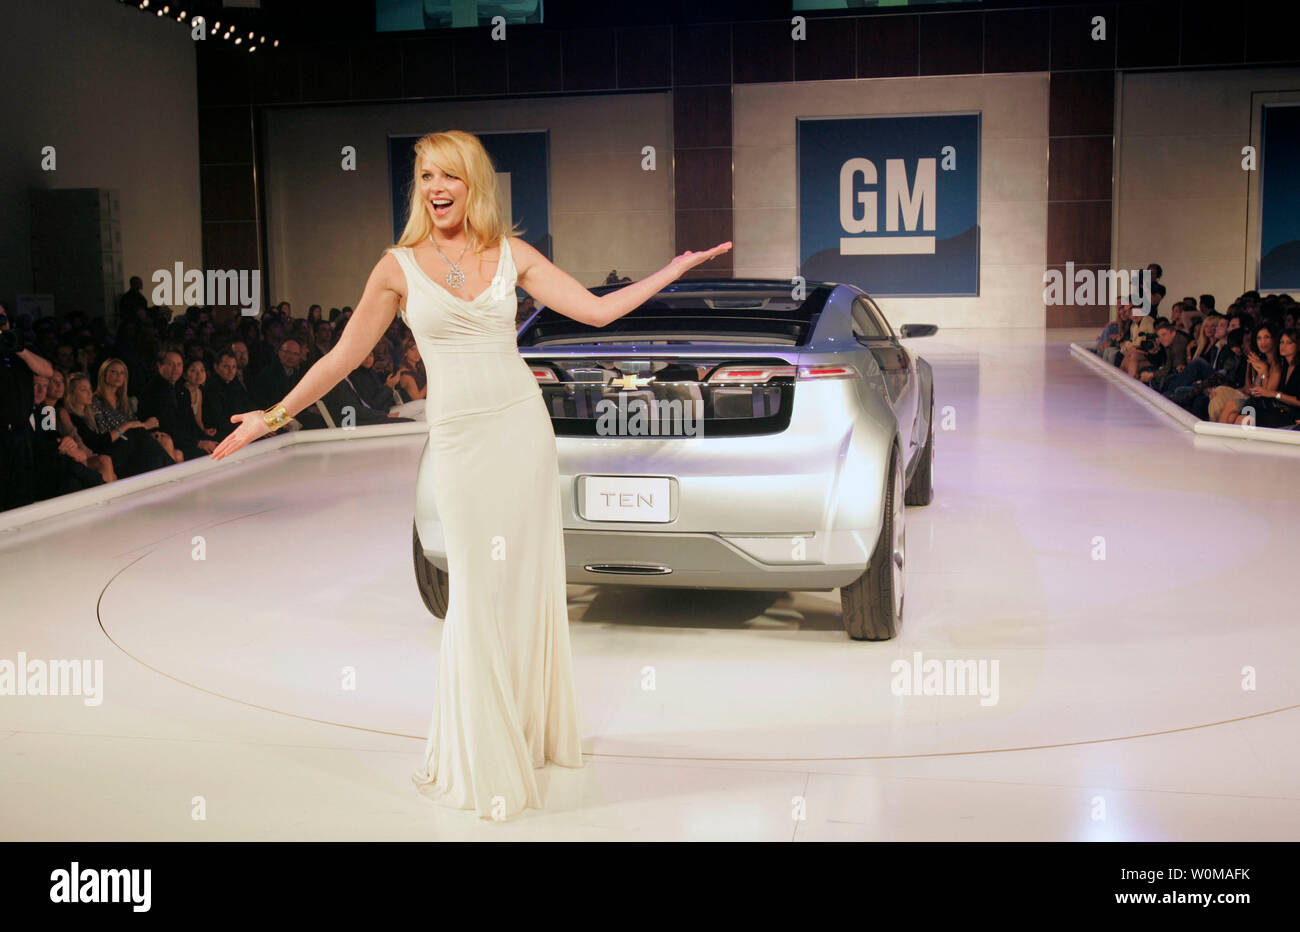 Actress Katherine Heigl, dressed in Dolce & Gabbana, walks the runway with a Chevy Volt Electric Concept  at the GM TEN fashion event in Los Angeles on February 20, 2007. The GM TEN event brings together celebrities, fashion and General Motors vehicles from around the world. (UPI Photo/General Motors) - Stock Image